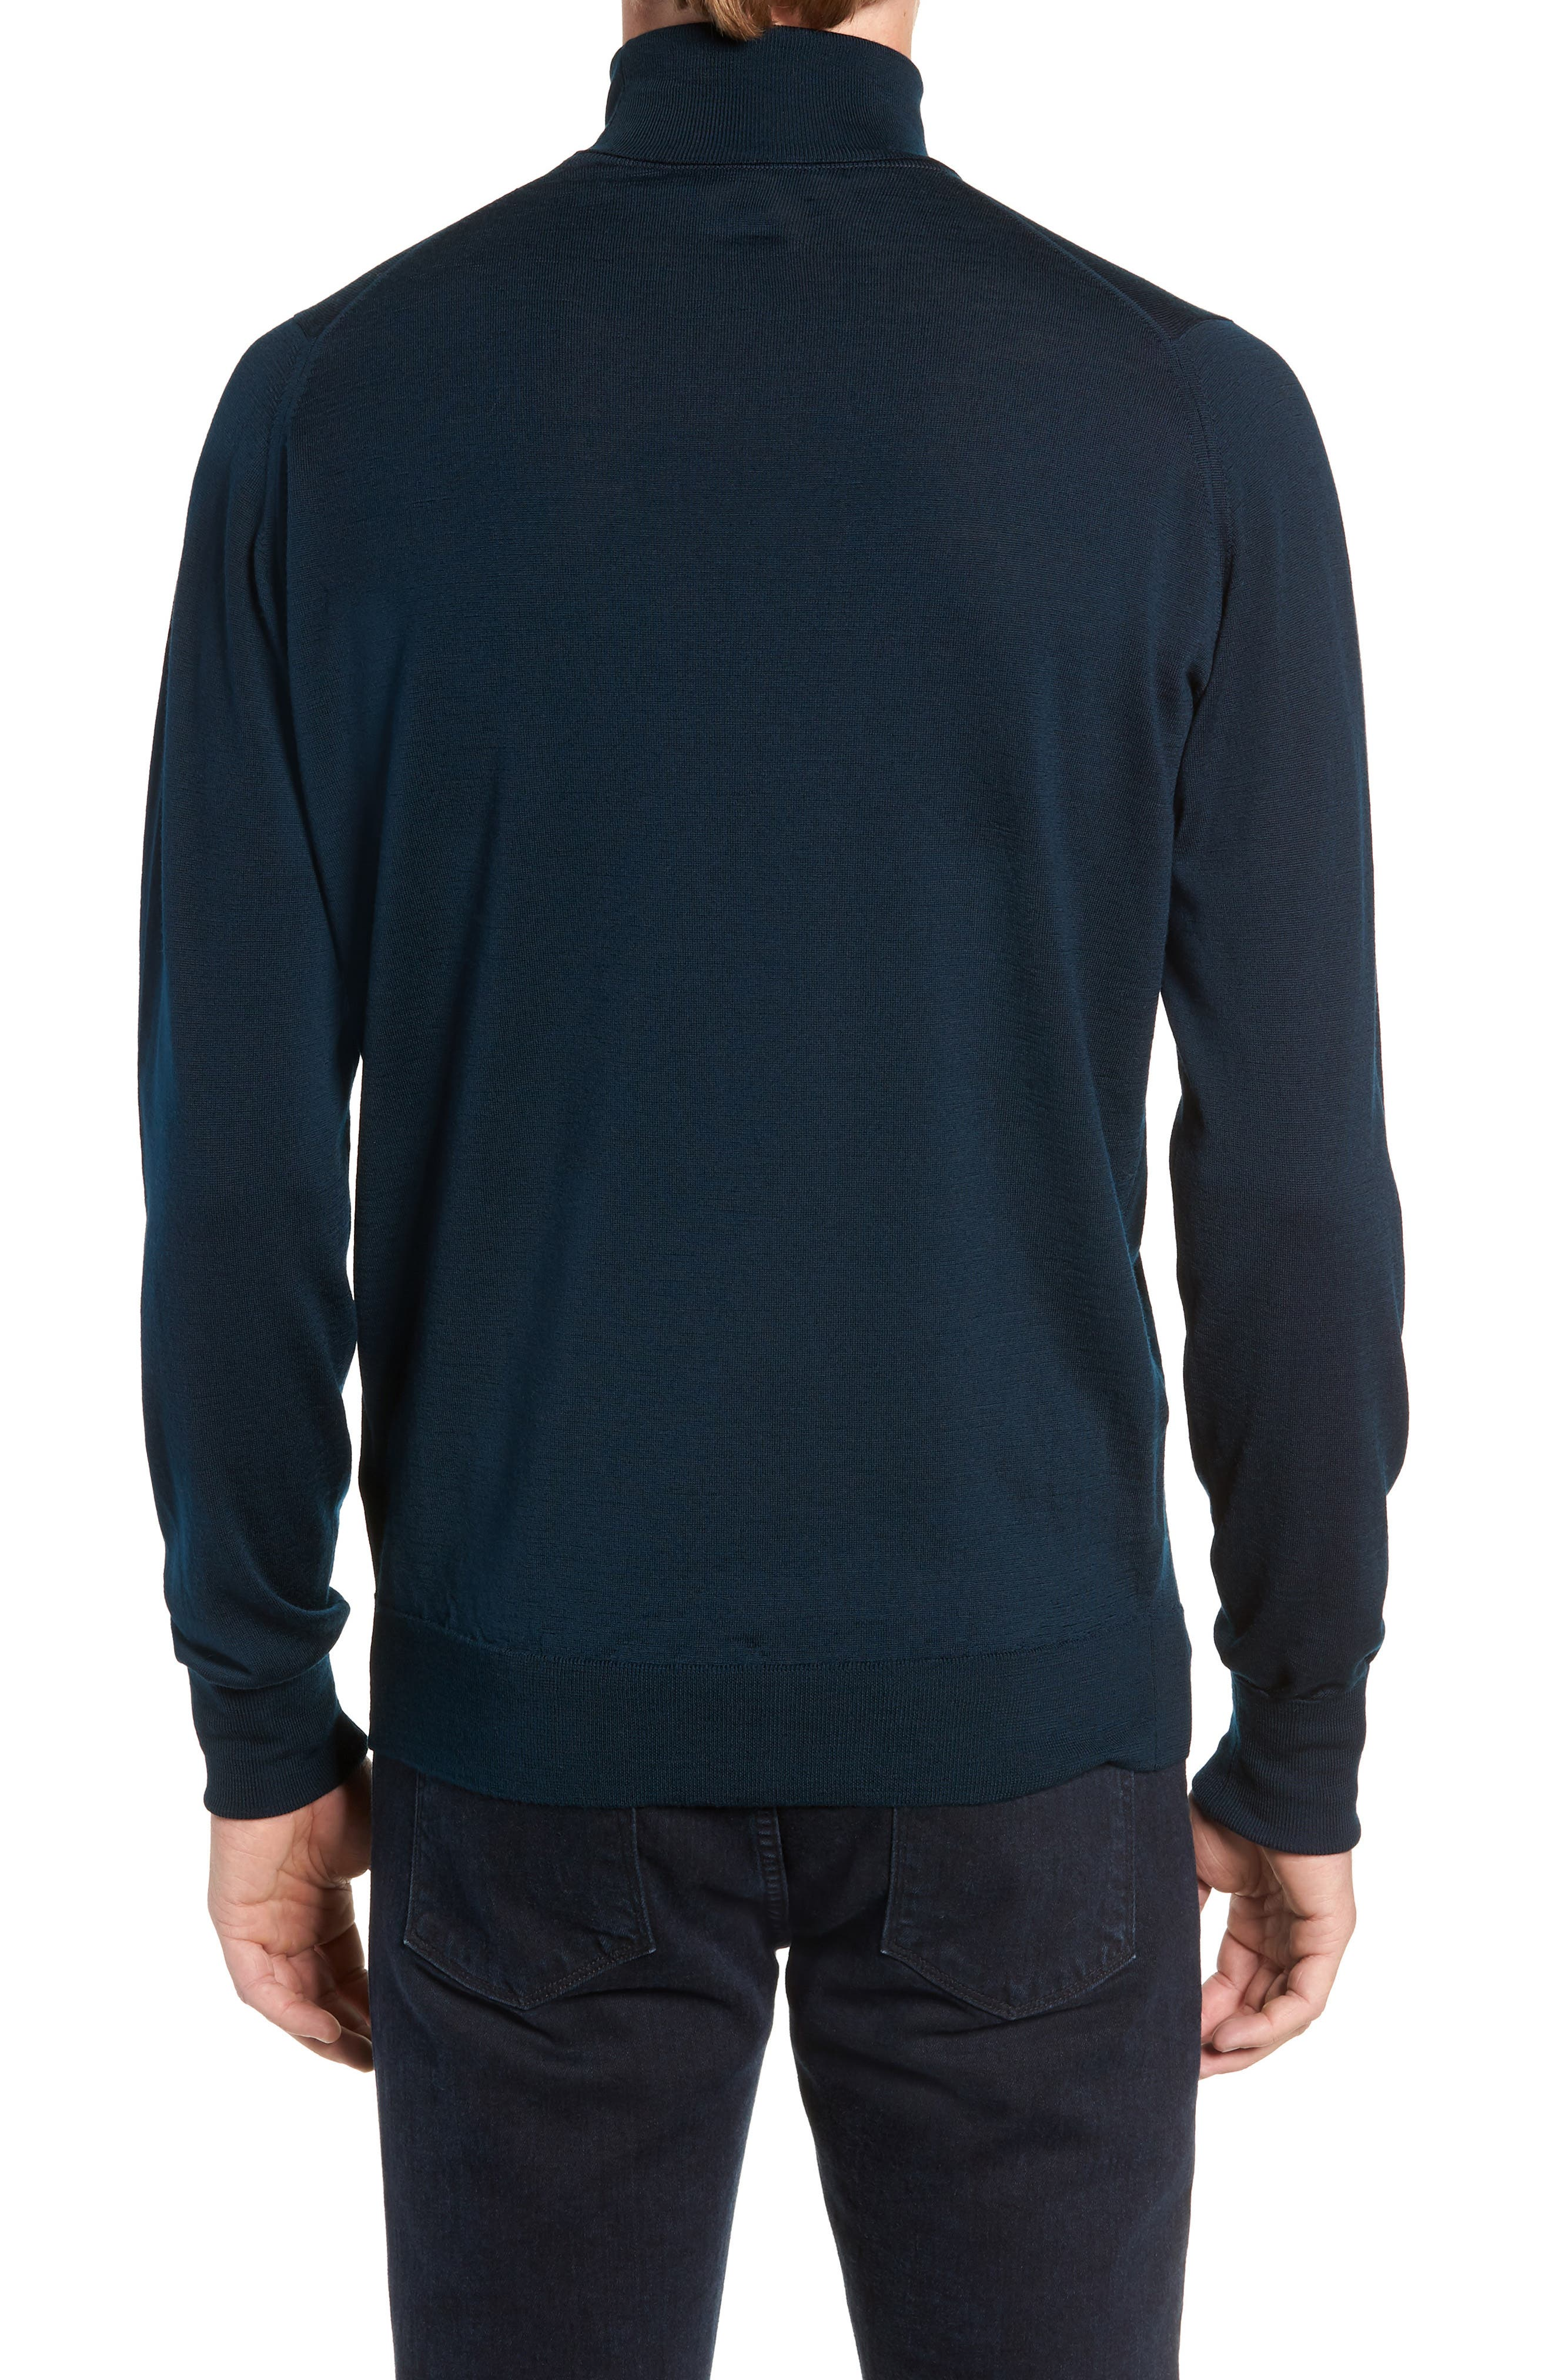 'Richards' Easy Fit Turtleneck Wool Sweater,                             Alternate thumbnail 11, color,